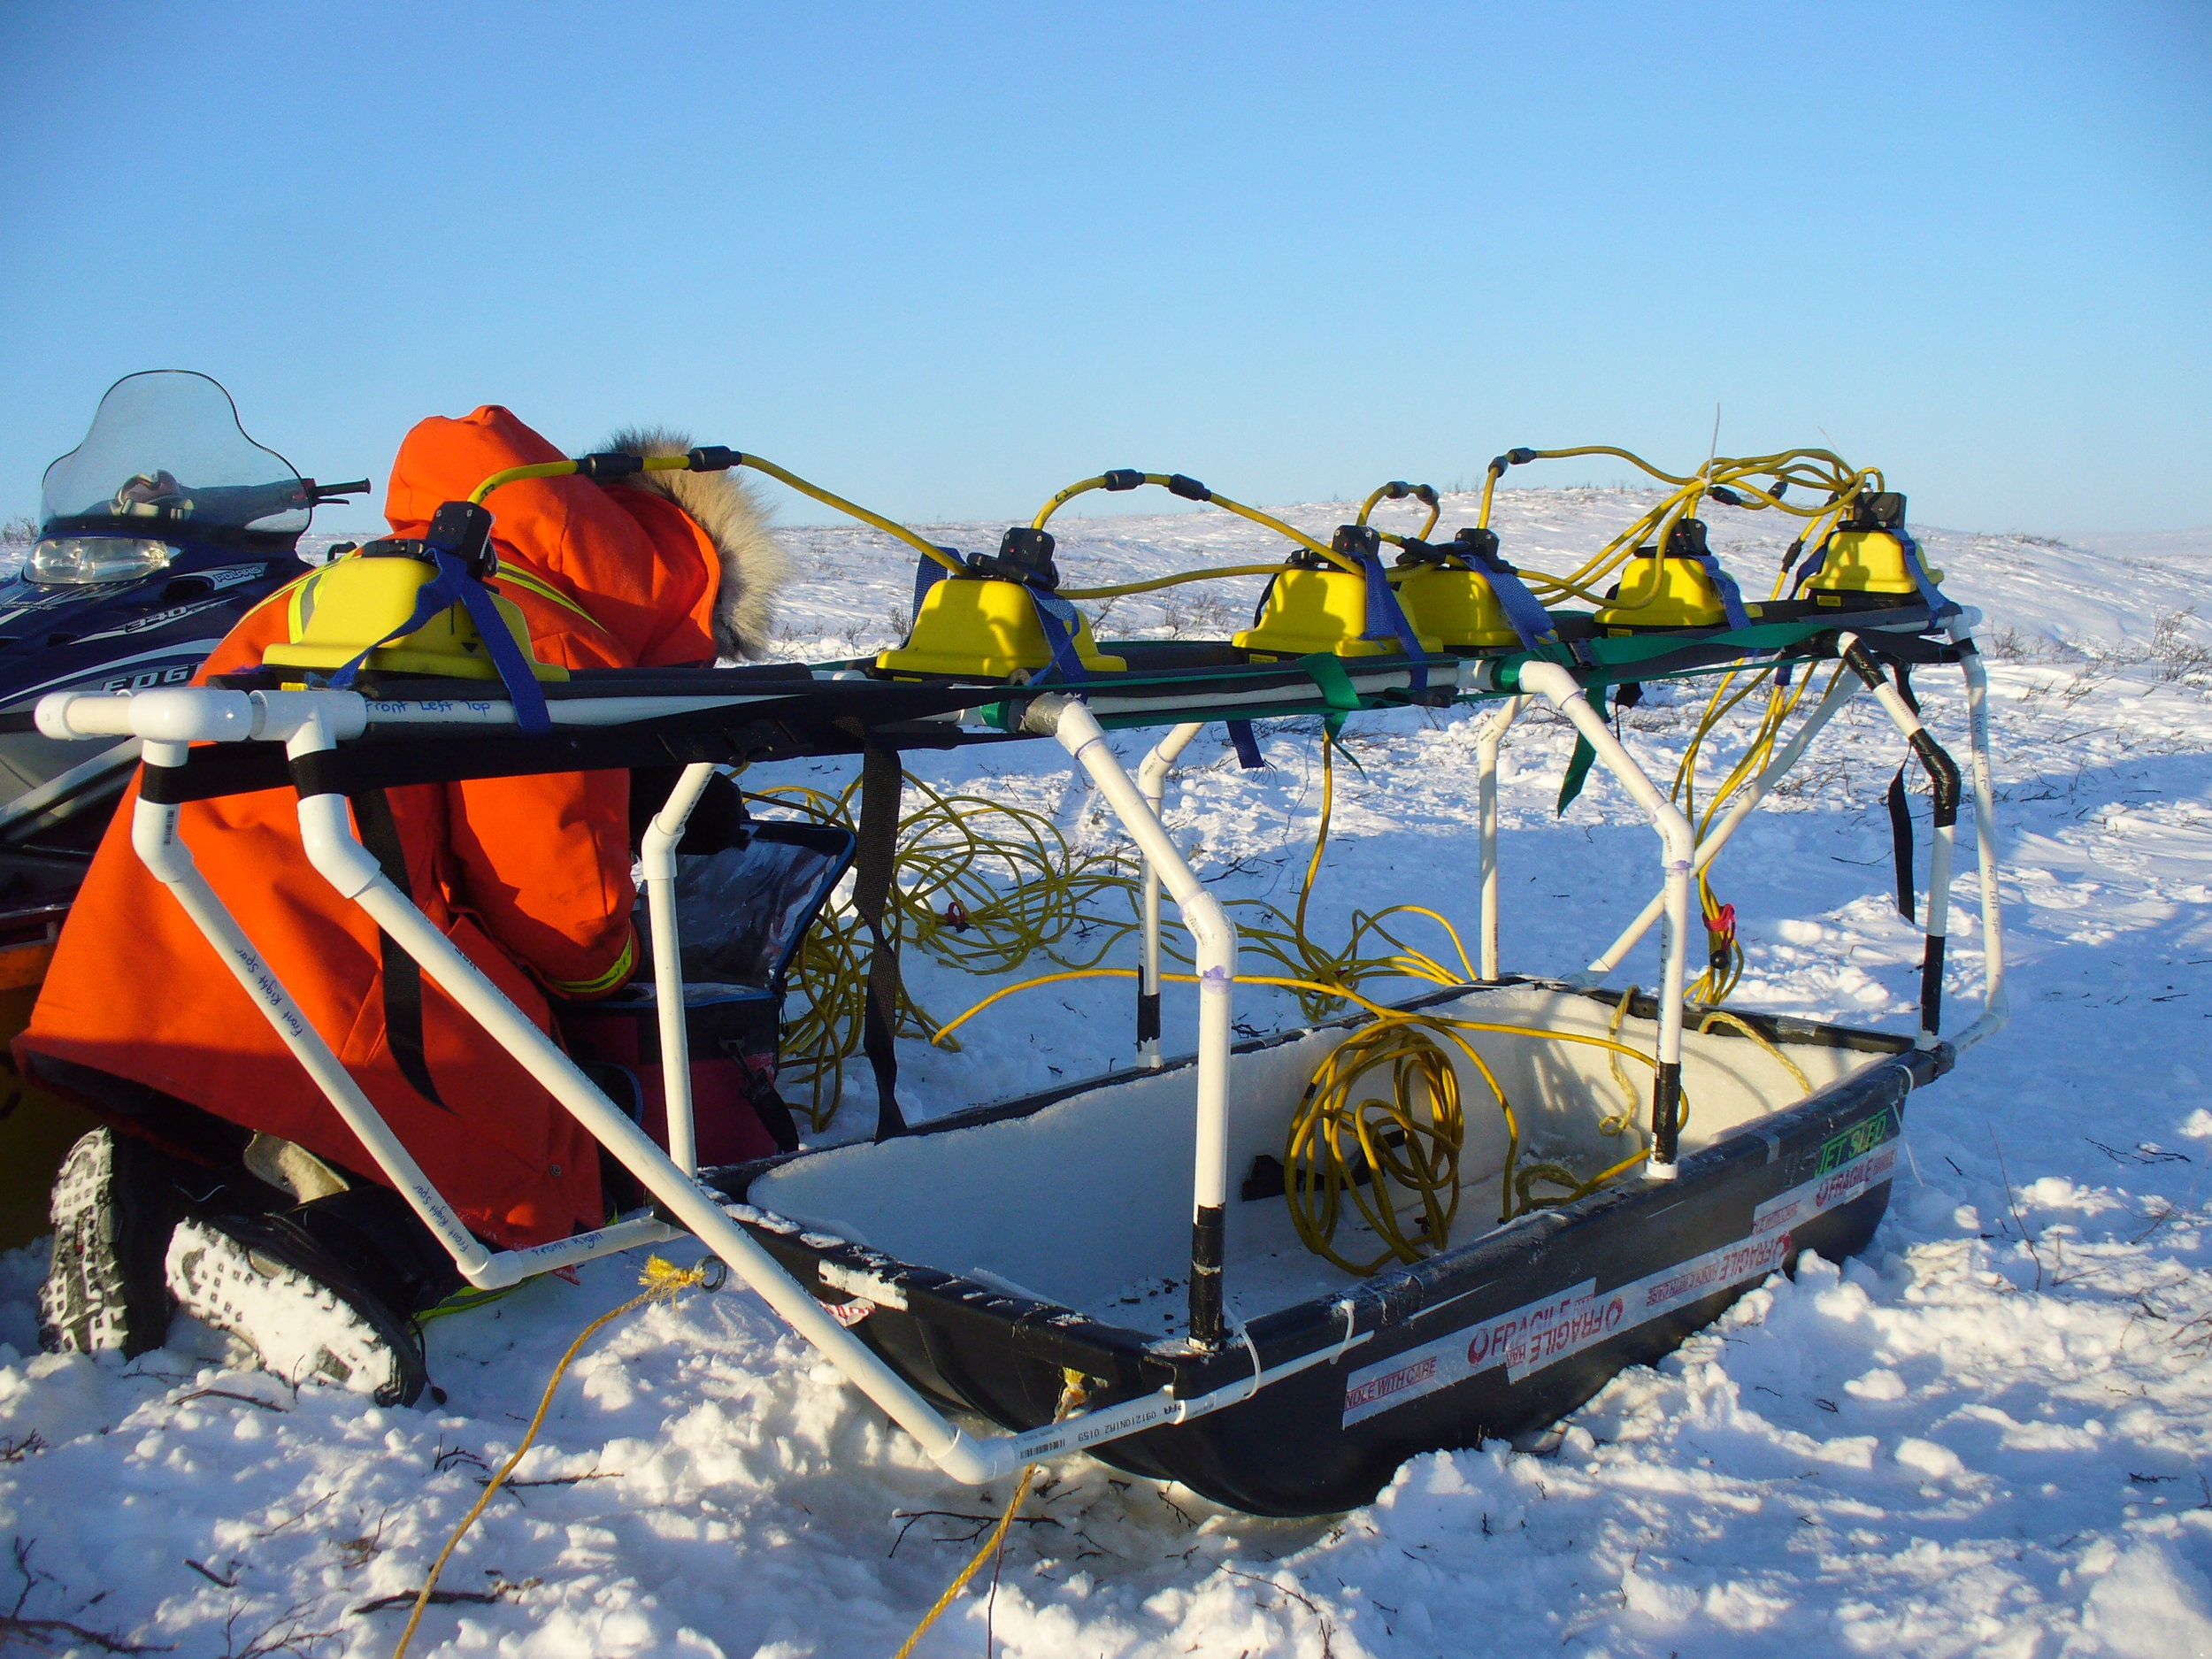 Setting up to collect multi-offset ground-penetrating radar data in Inuvik, Canada, at -40C